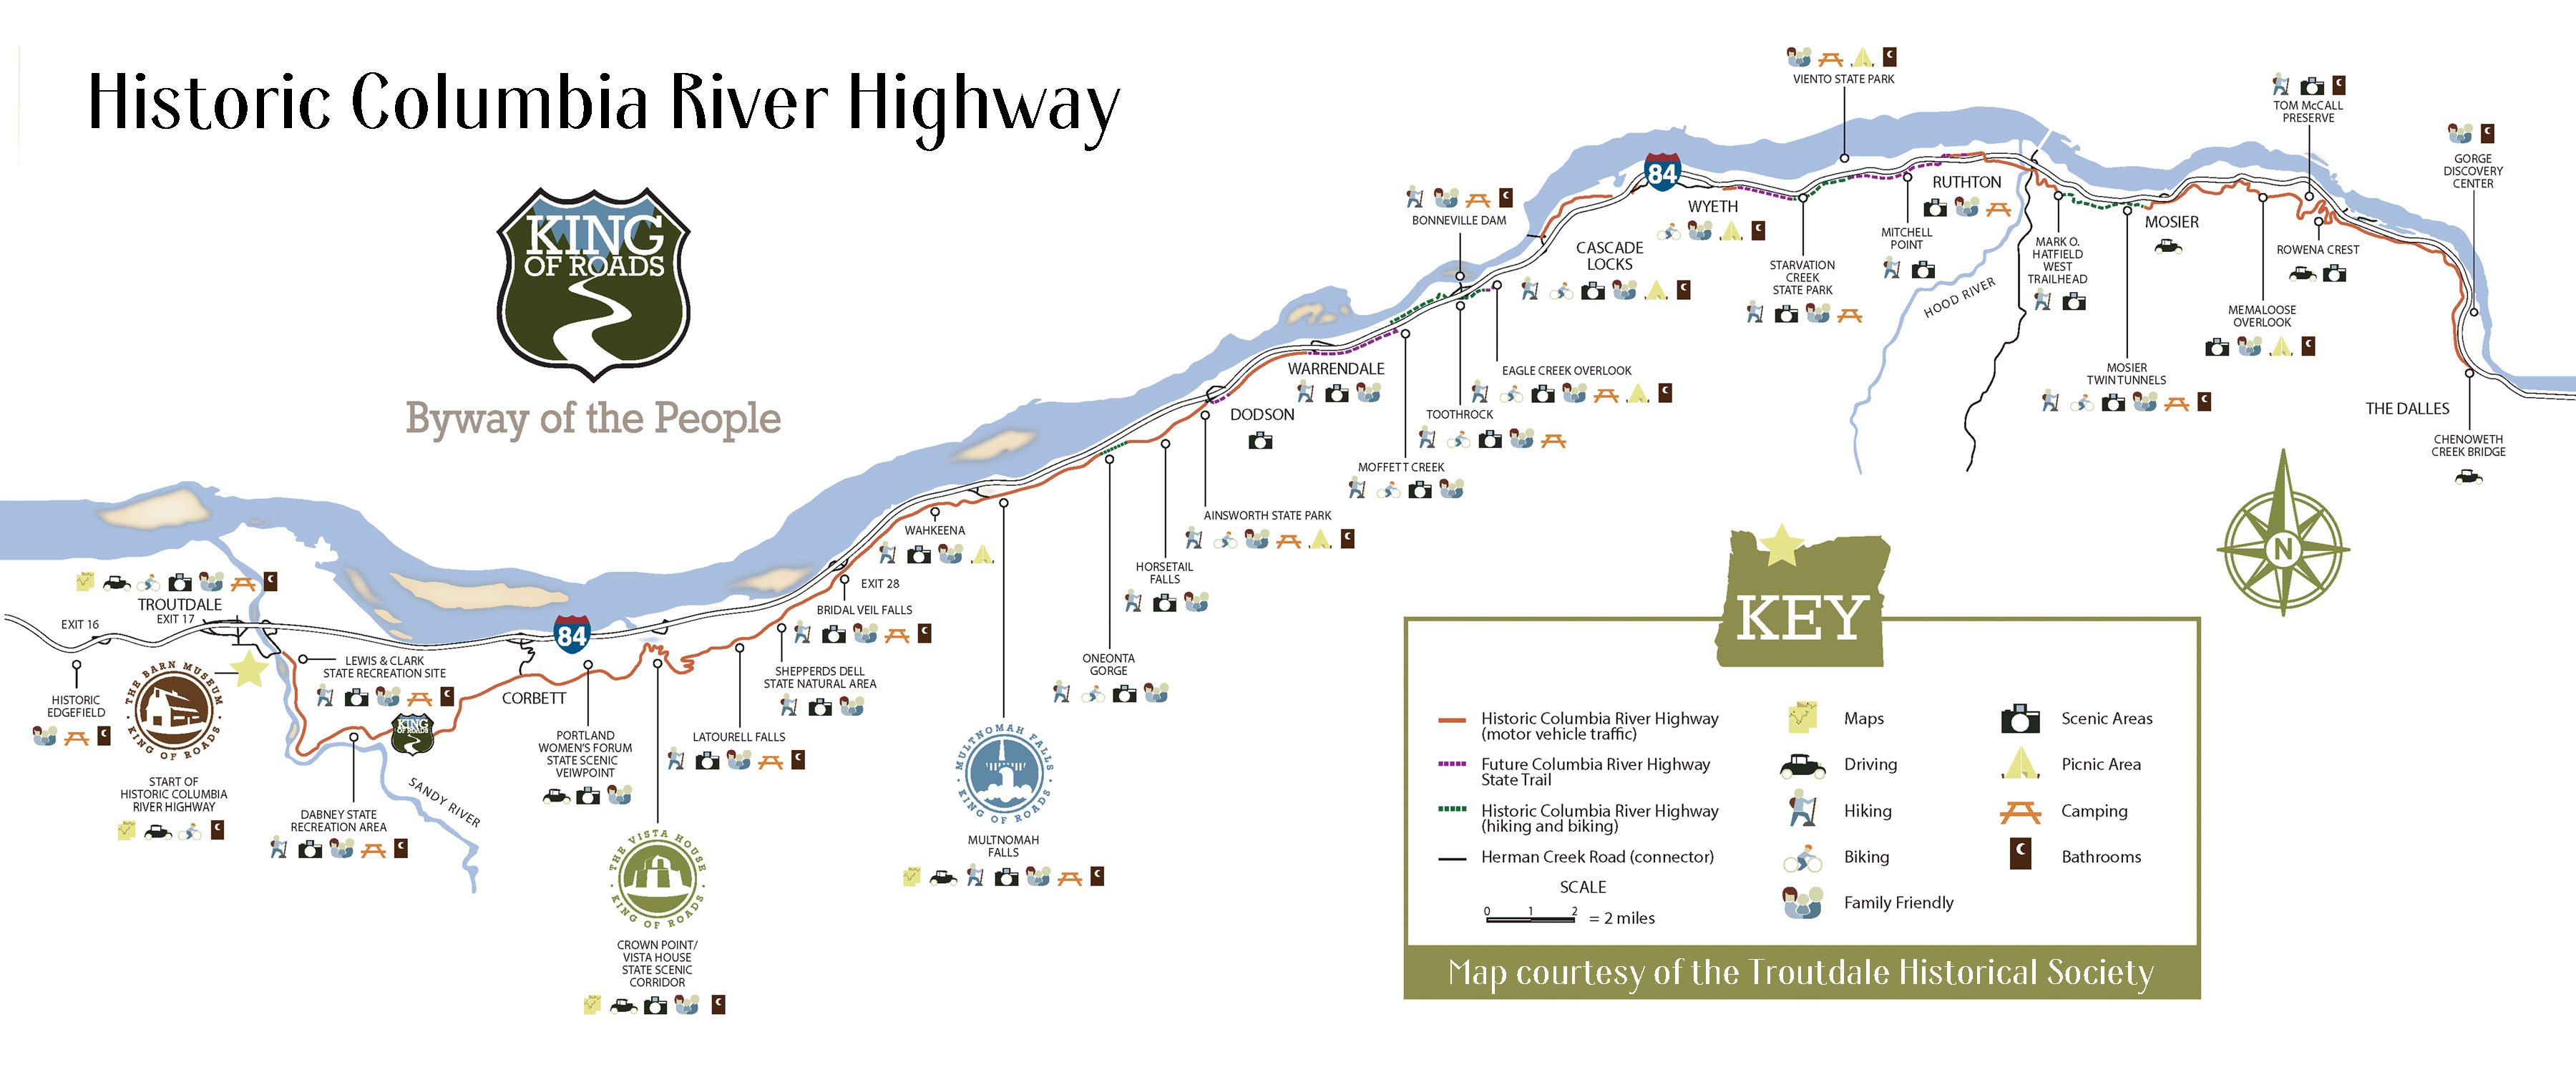 Oregon Secretary Of State Current And Vintage Maps - Map of oregon highways